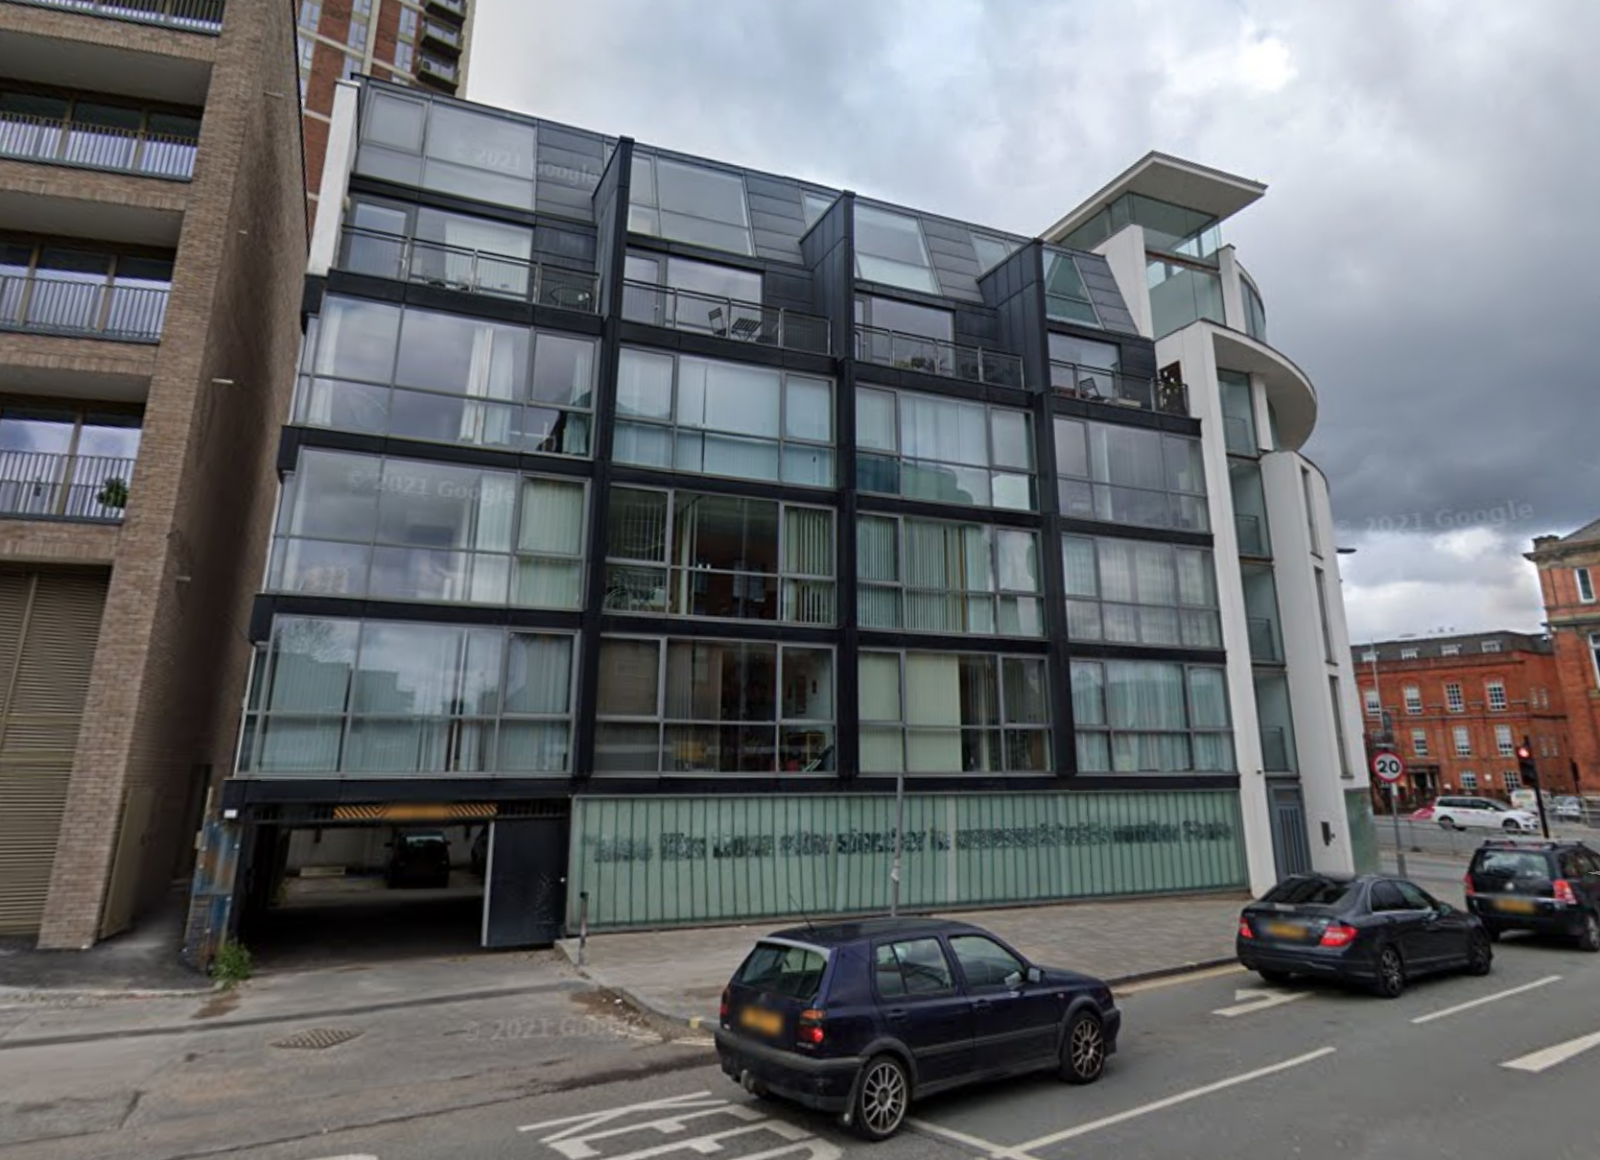 Residents in Salford apartment block handed £100k bill to remove cladding, The Manc